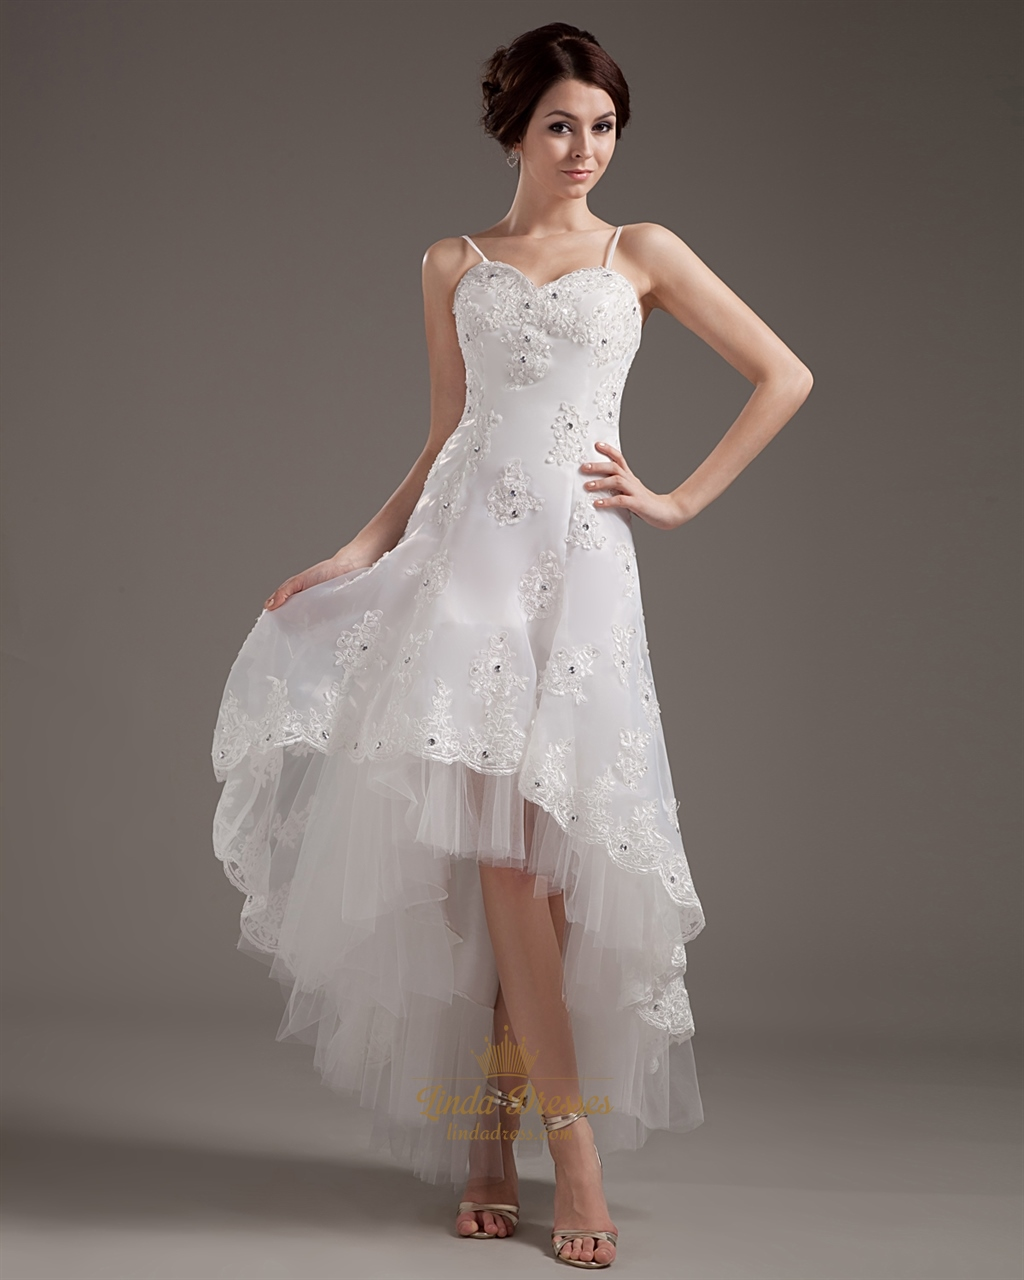 Ivory Organza Lace Lique Spaghetti Strap High Low Wedding Dress